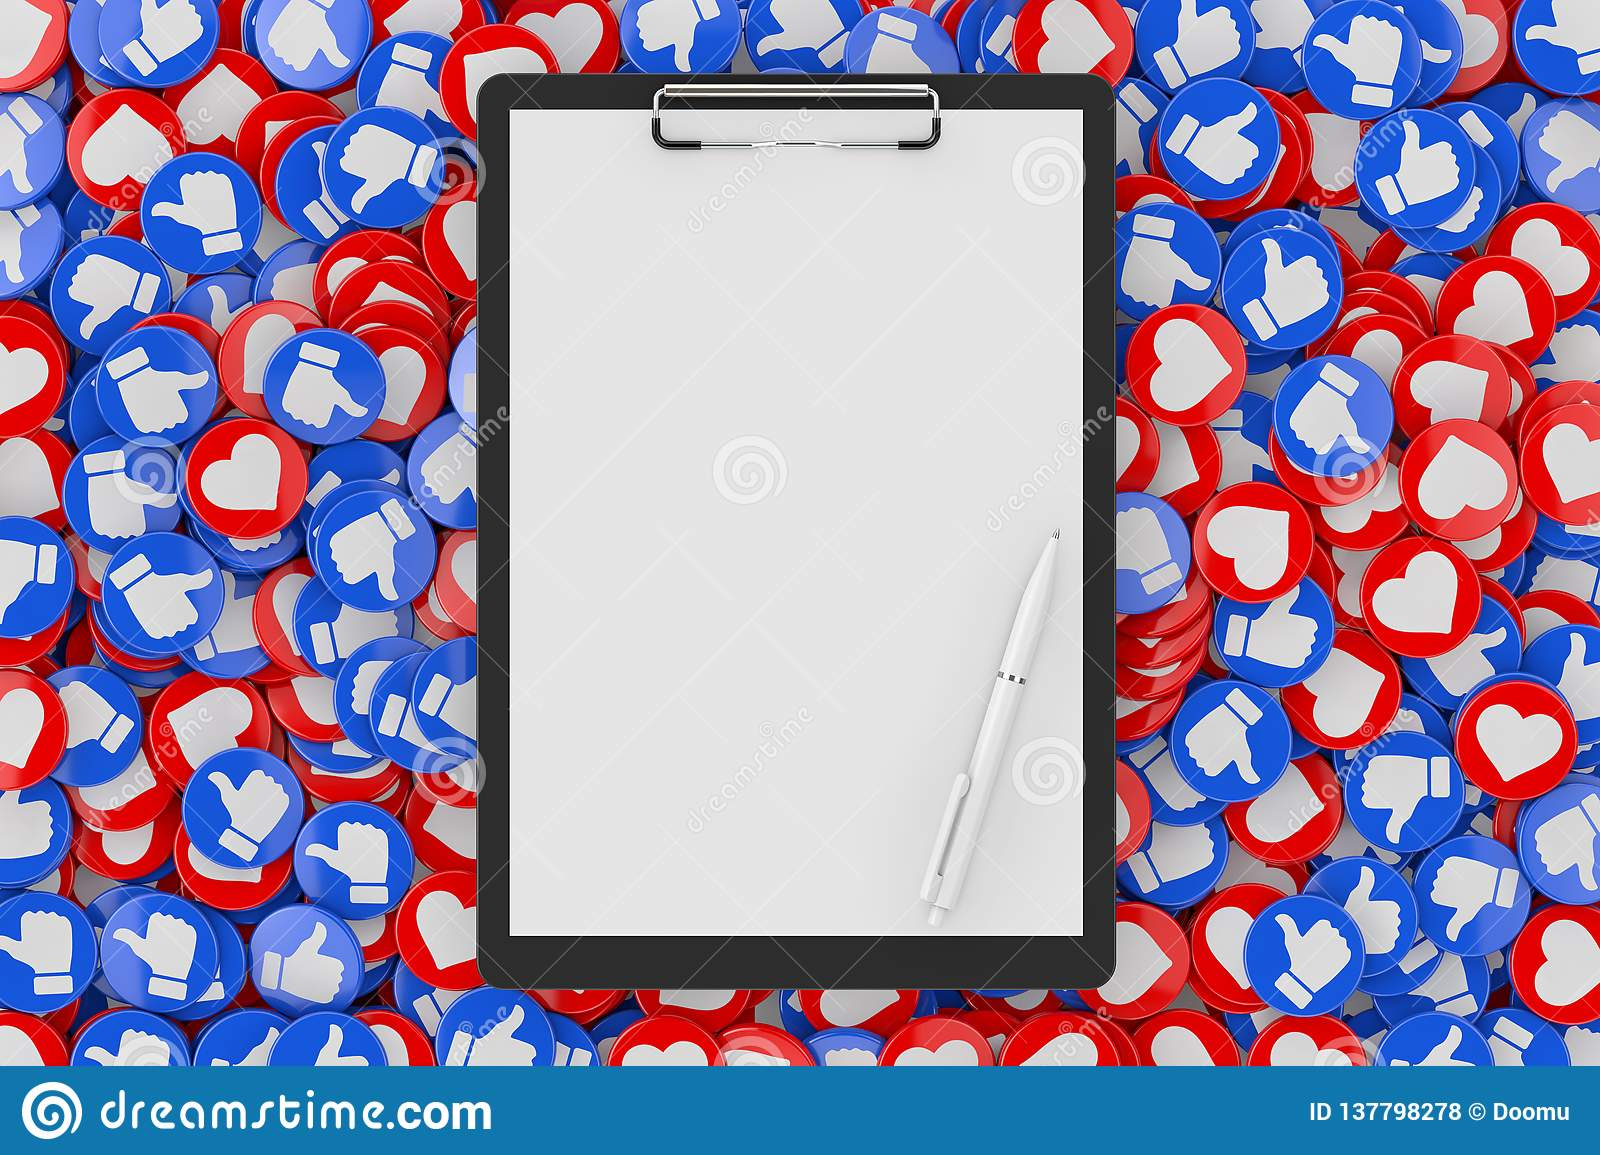 Clipboard with Blank Paper and Pen over Heap of Social Media Network Love and Like Heart Badges Coins Background Texture. 3d